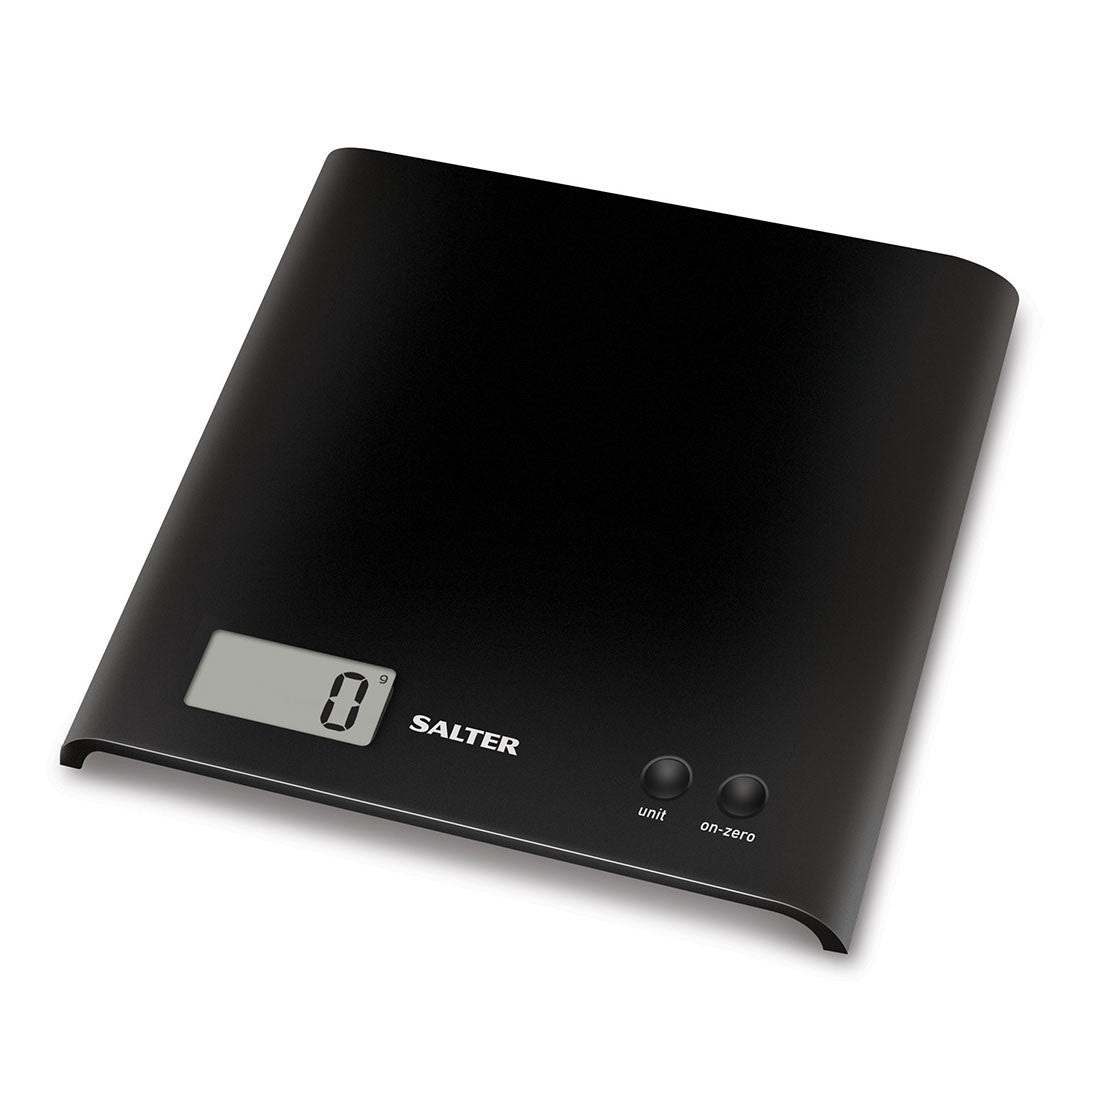 Salter Arc Digital Kitchen Scales – Electronic Food Weighing, Slim Design Cooking Scale Appliance for Home, LCD Display, 15 Year Guarantee, Black | 1066